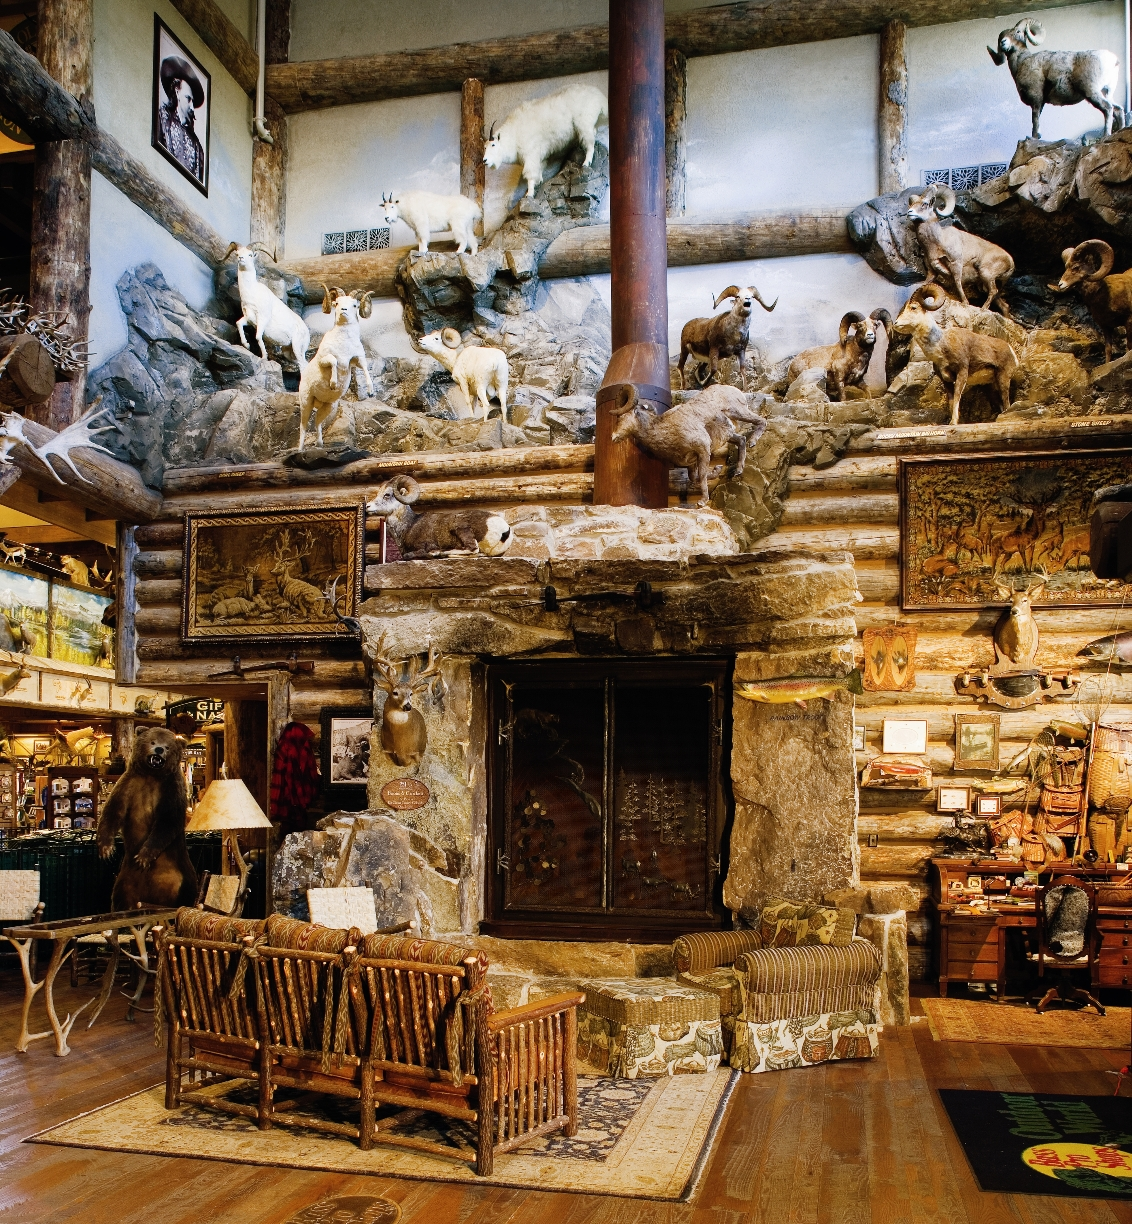 Bass pro shops outdoor world opens august 20 in bristol for Bass pro shop fishing